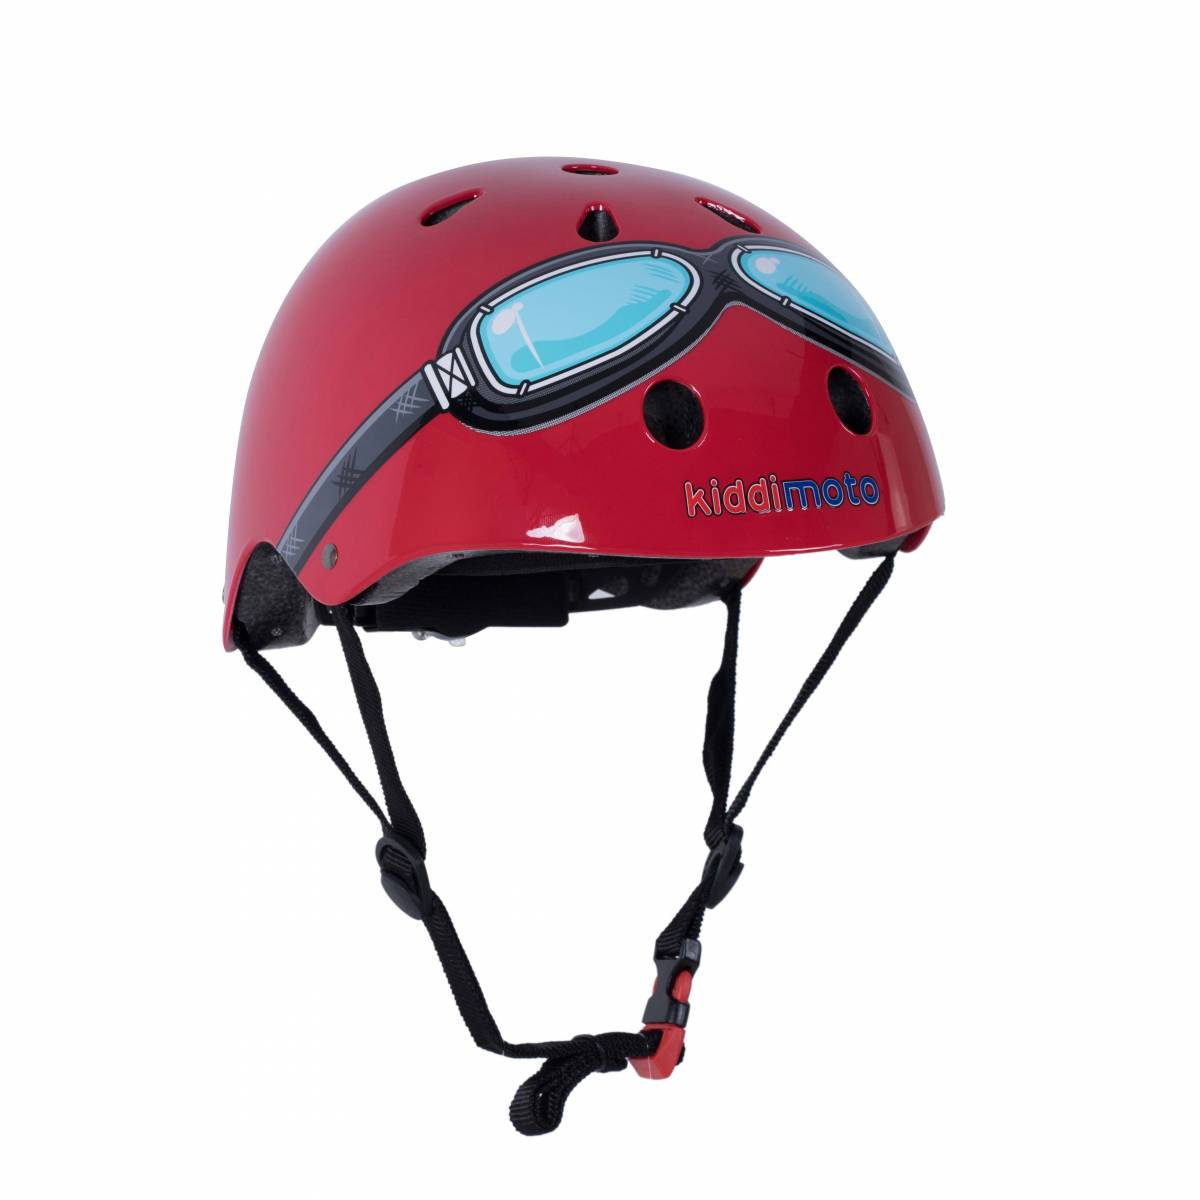 Win a red goggle bike helmet from Kiddimoto worth £30